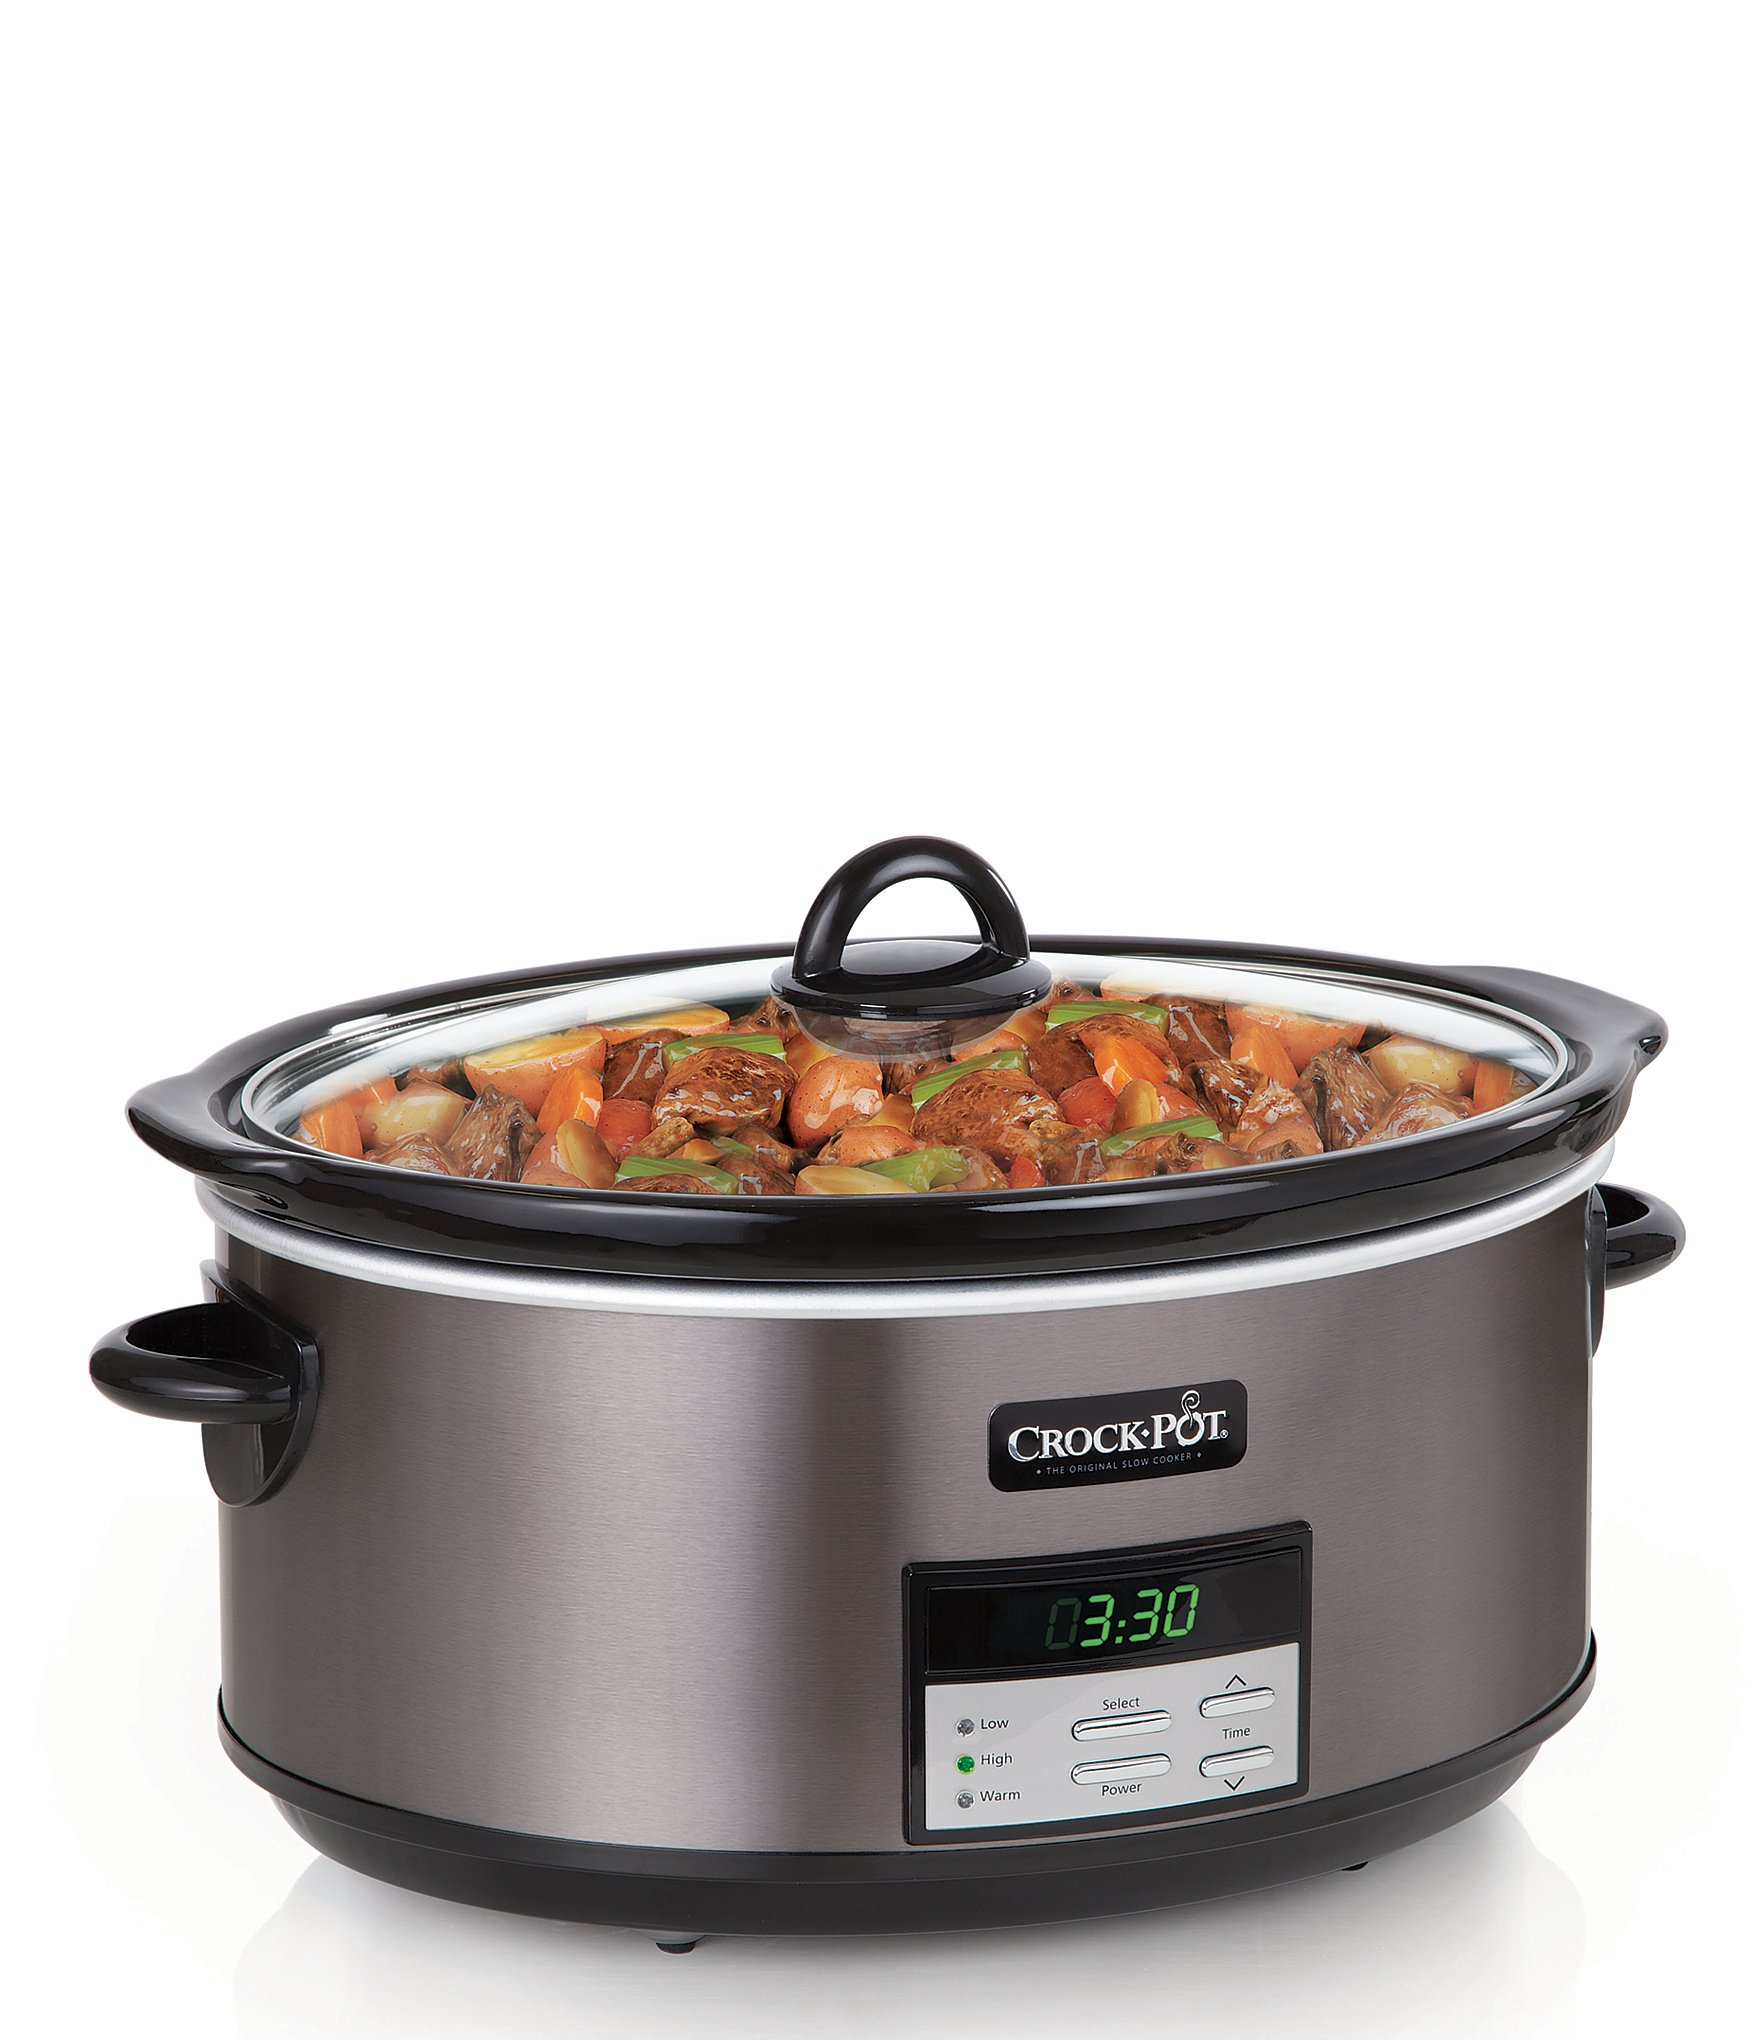 100 Kitchenaid 6 Quart Slow Cooker The Best Slow Cookers Our Slow Cooker Reviews